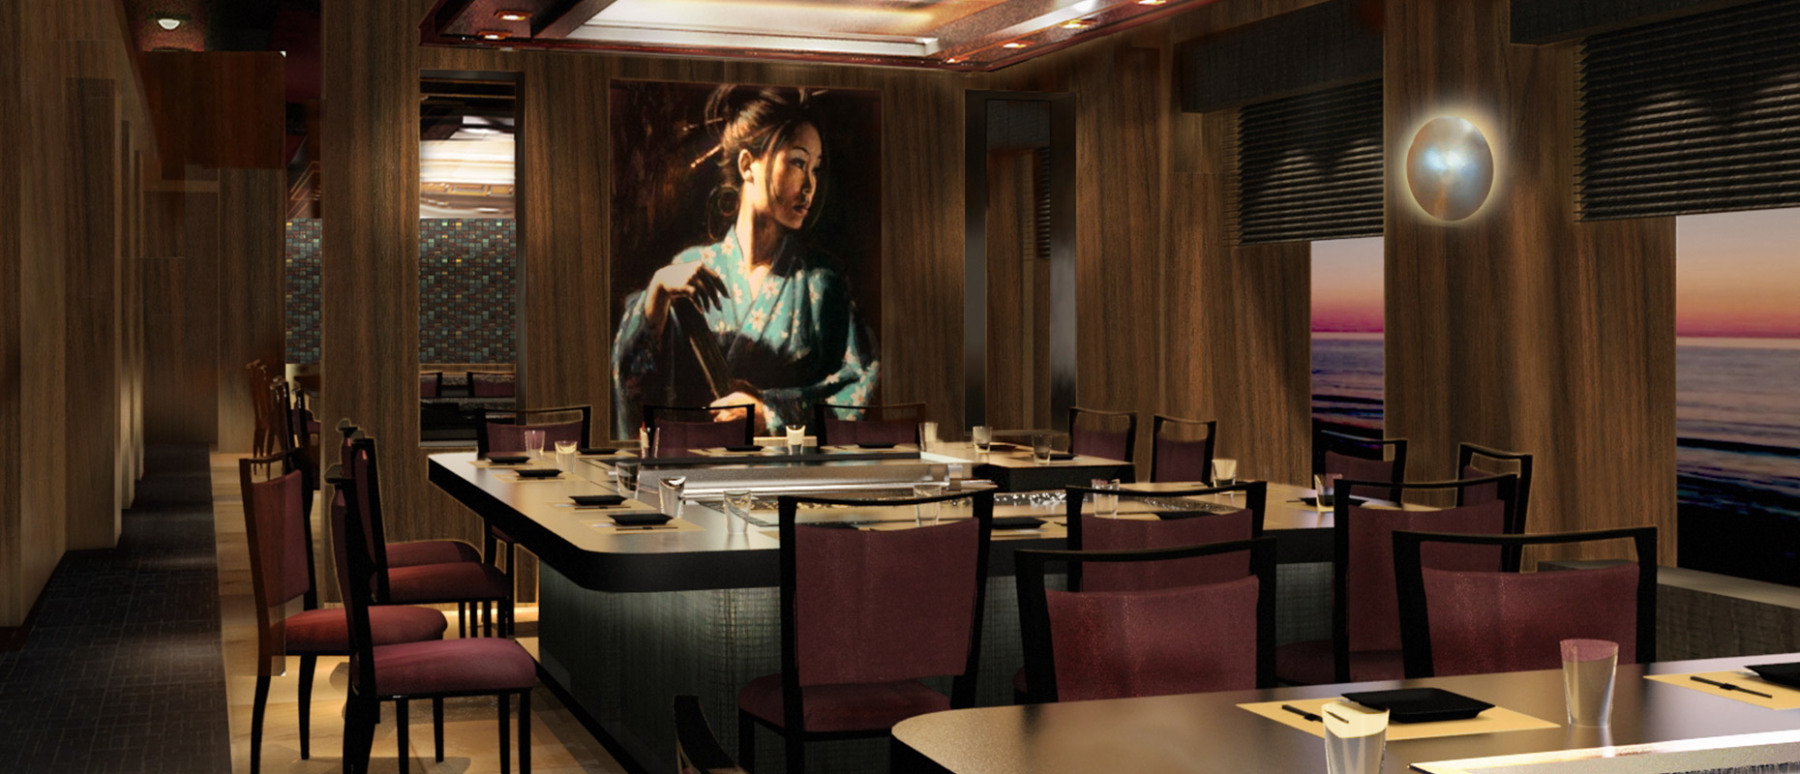 Norwegian Cruise Line Norwegian Escape Interior Teppanyaki.jpg